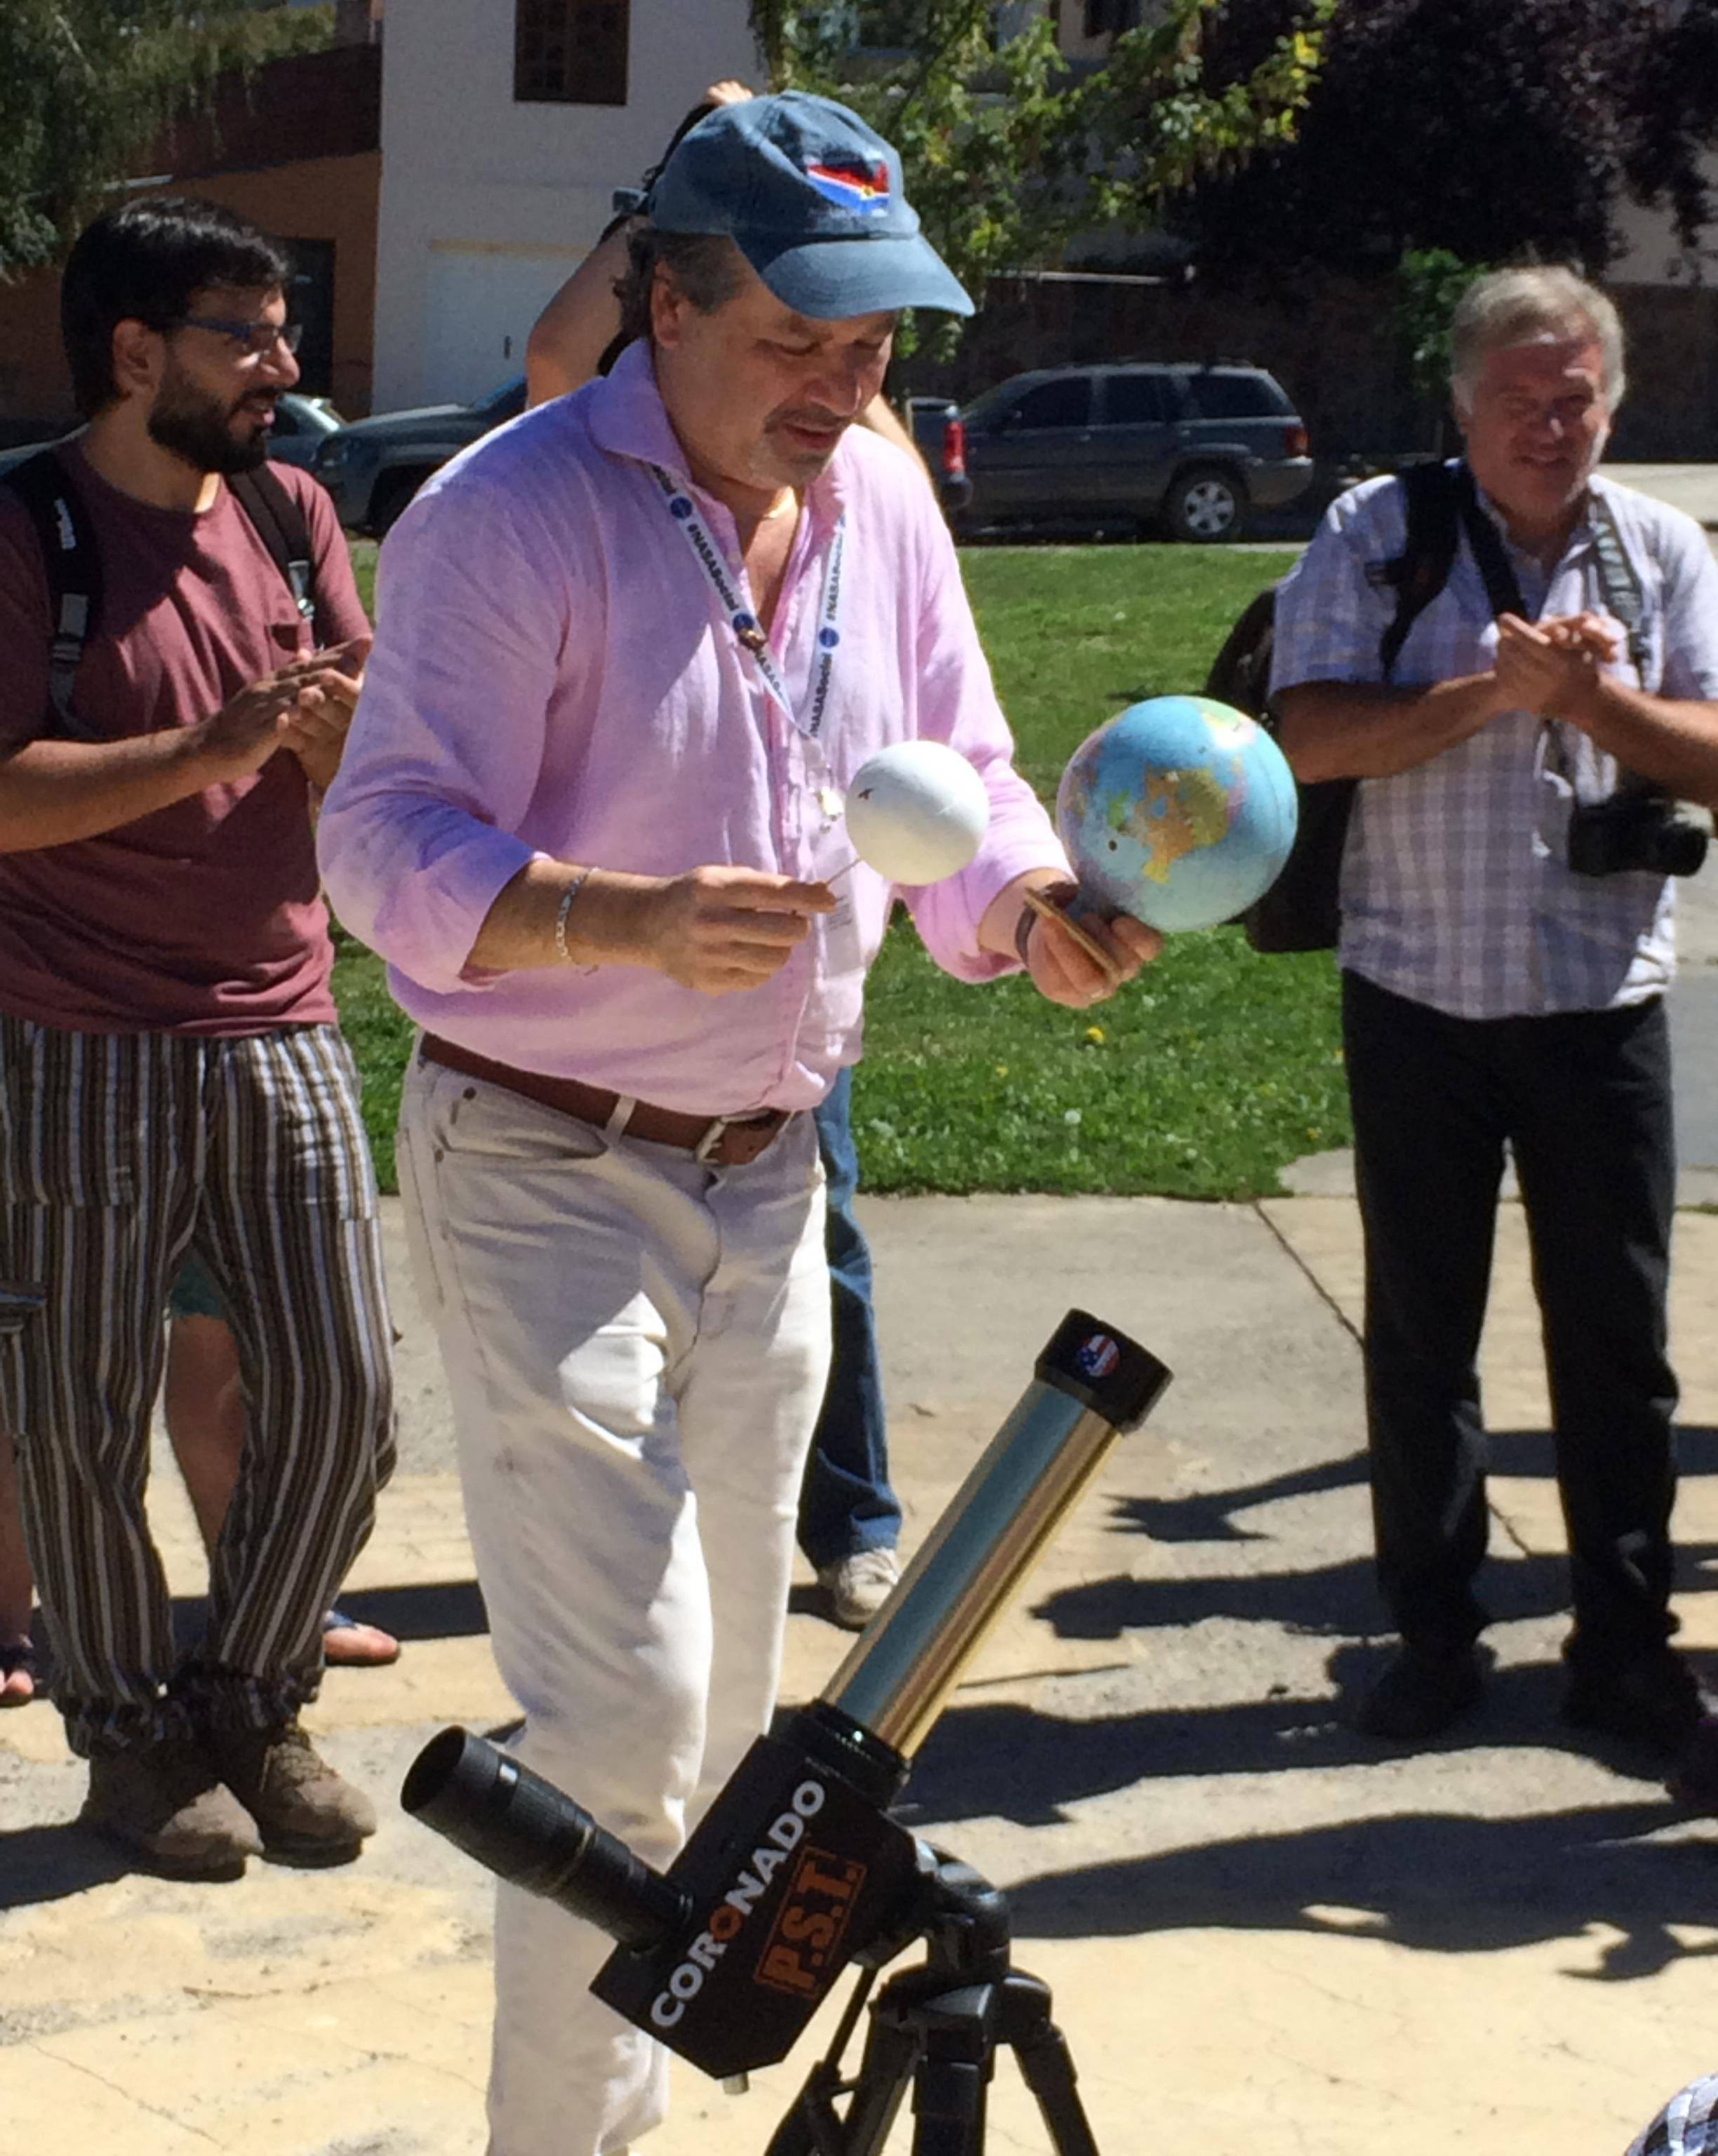 Davis: Chuck Fulco, our awesome total eclipse expert